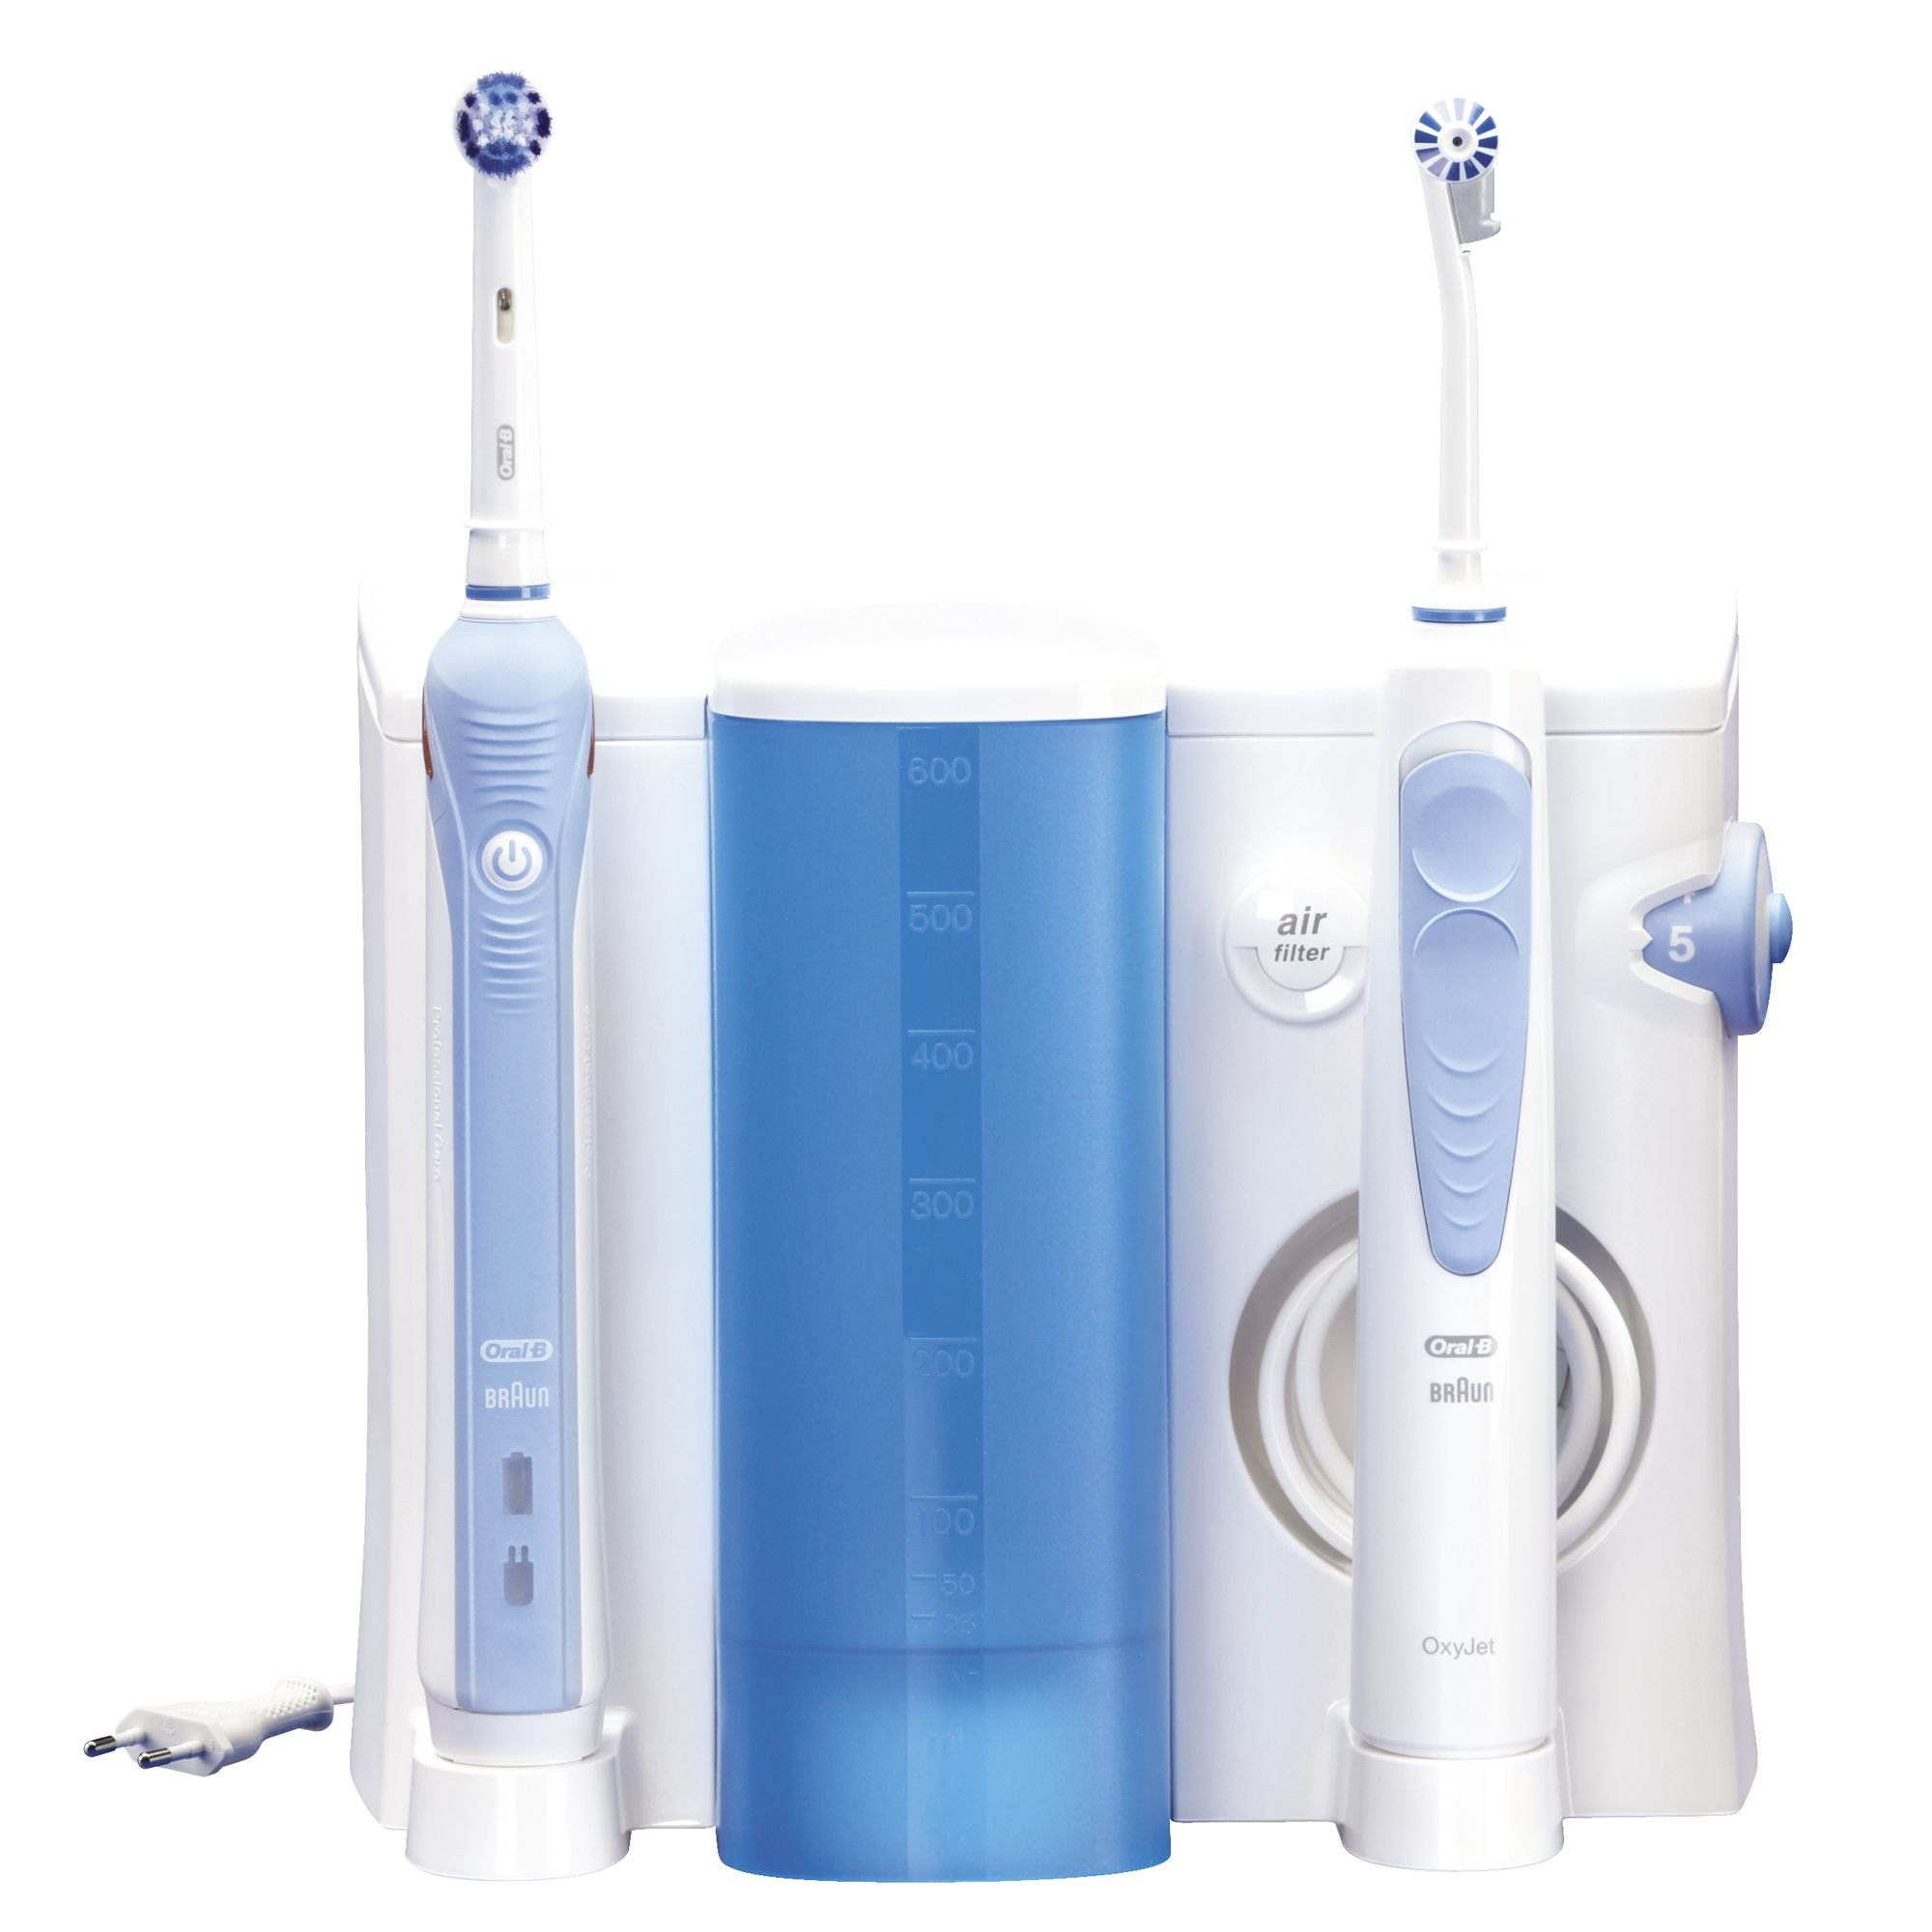 Oral-B OC20525 - Cepillo de dientes electrico recargable y irrigador bucal, color blanco